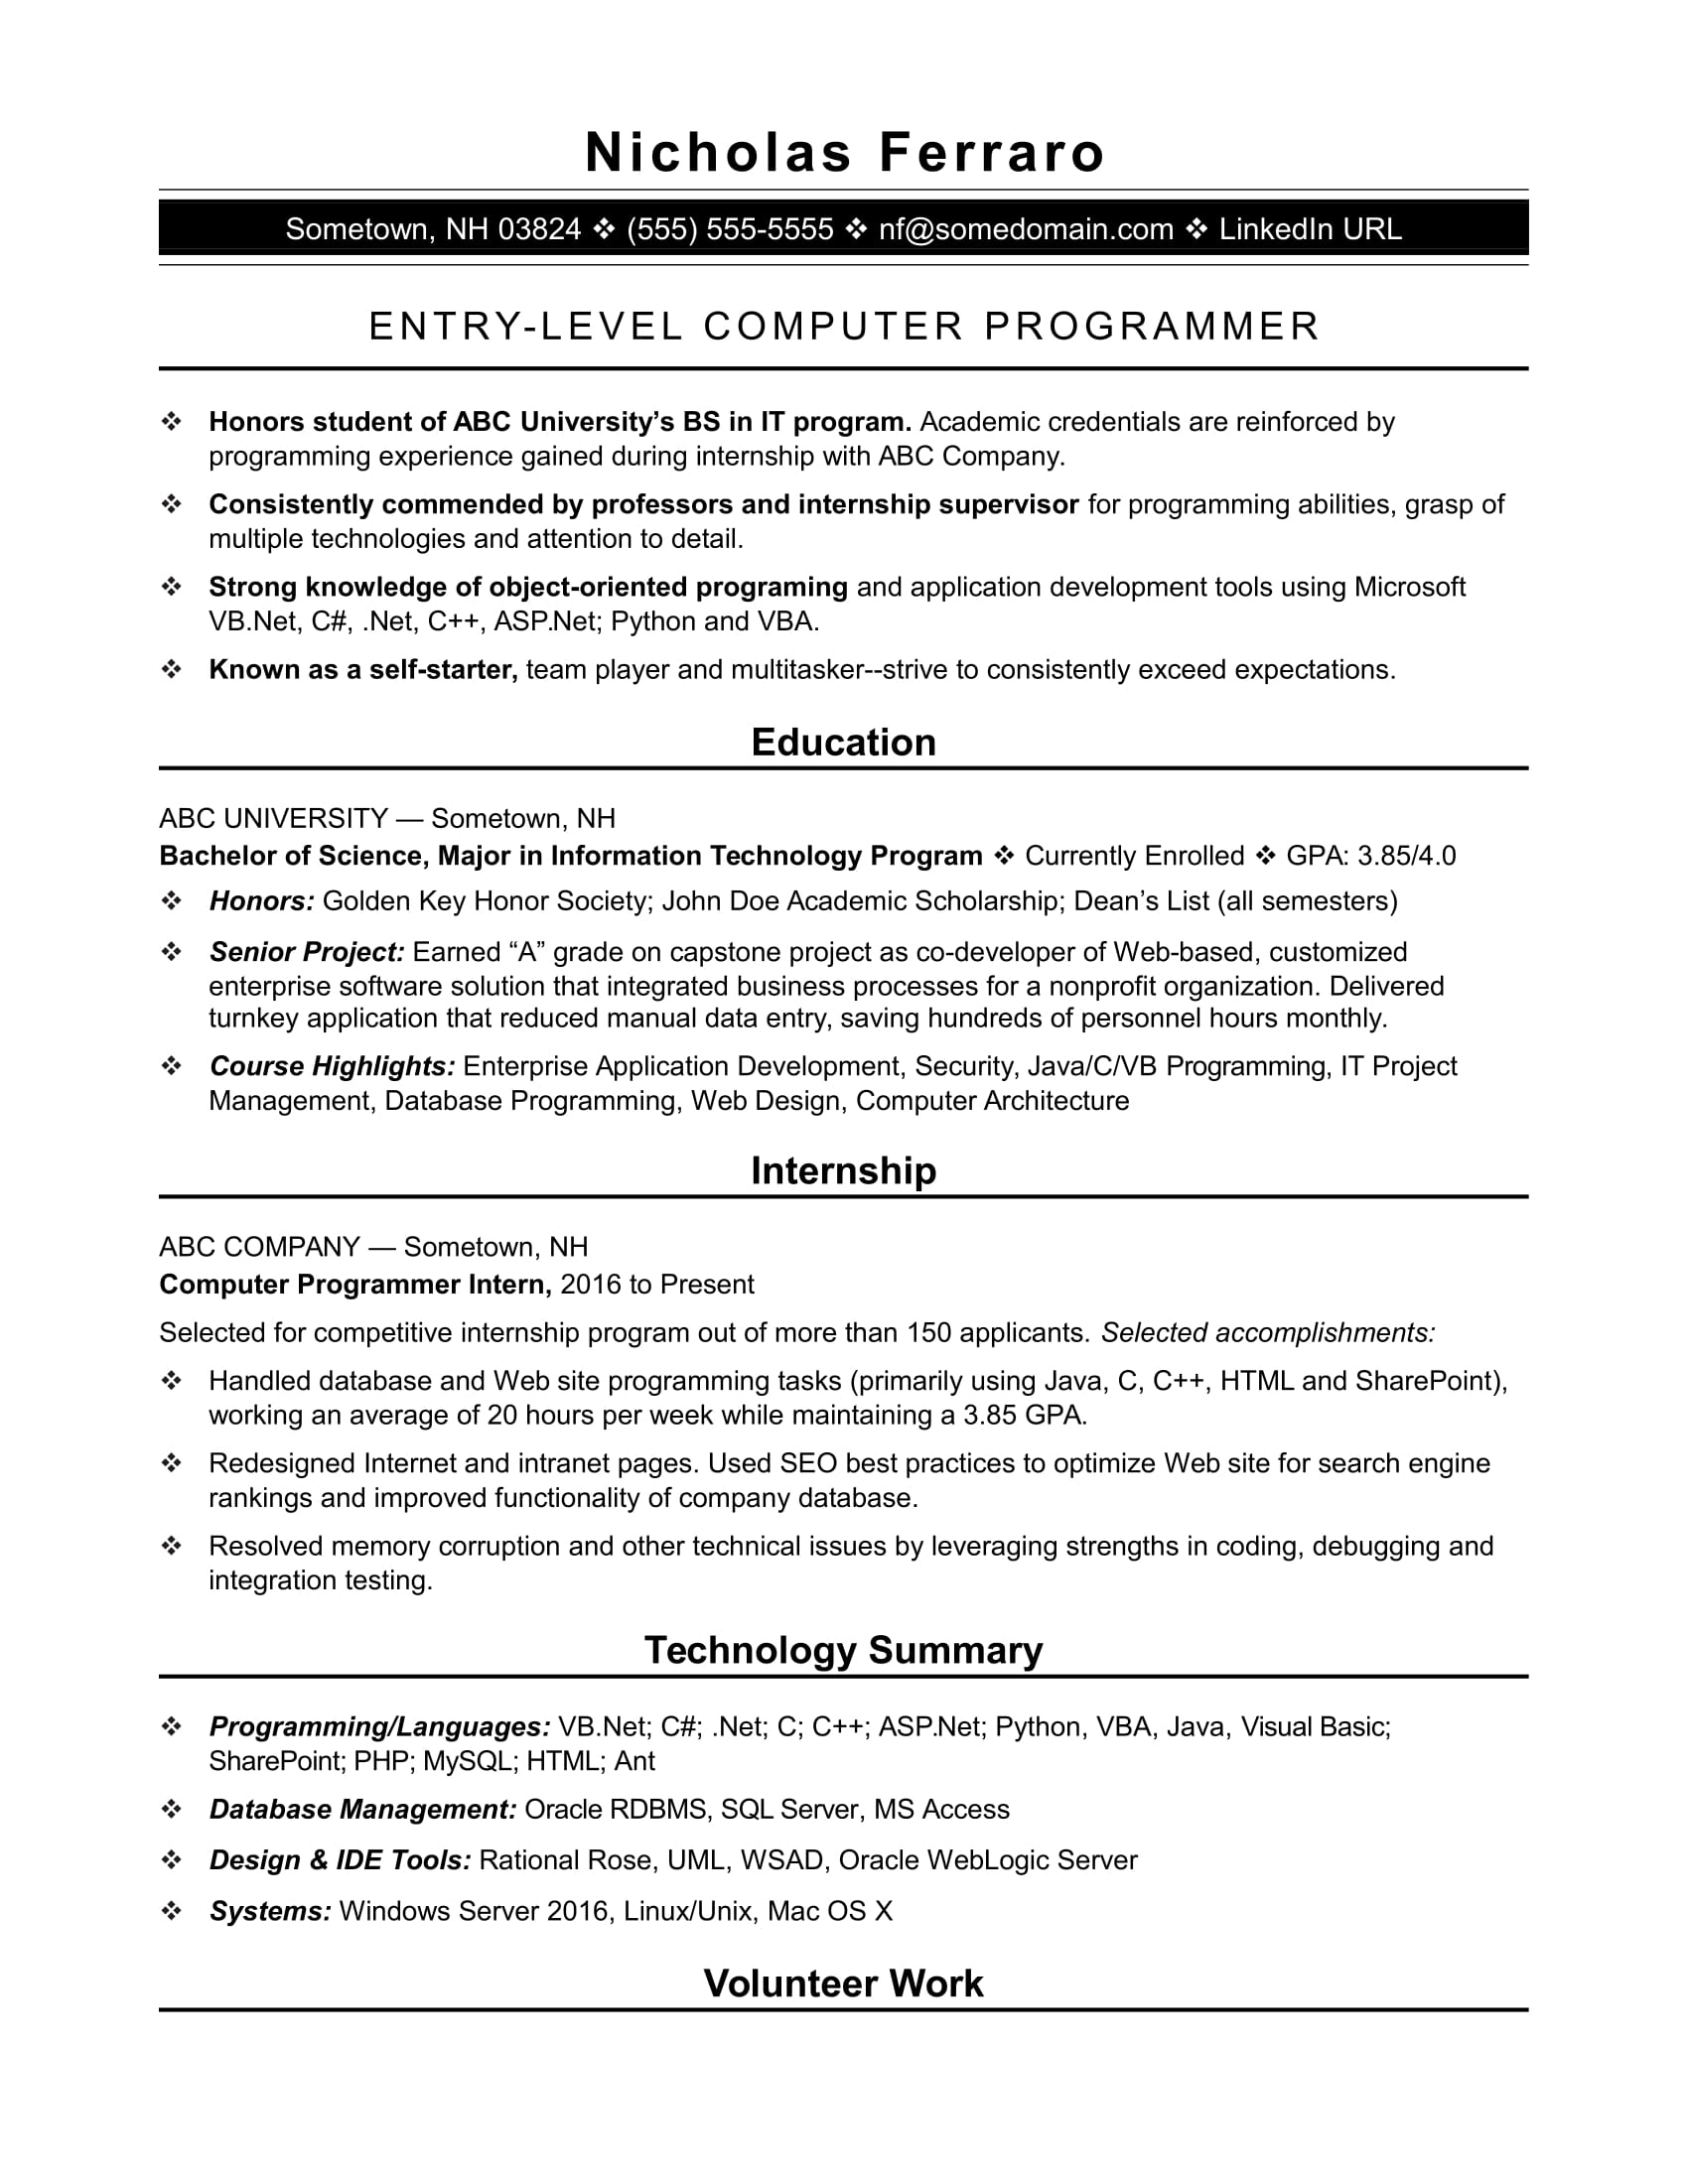 Sample Resume For An EntryLevel Computer Programmer  Monstercom